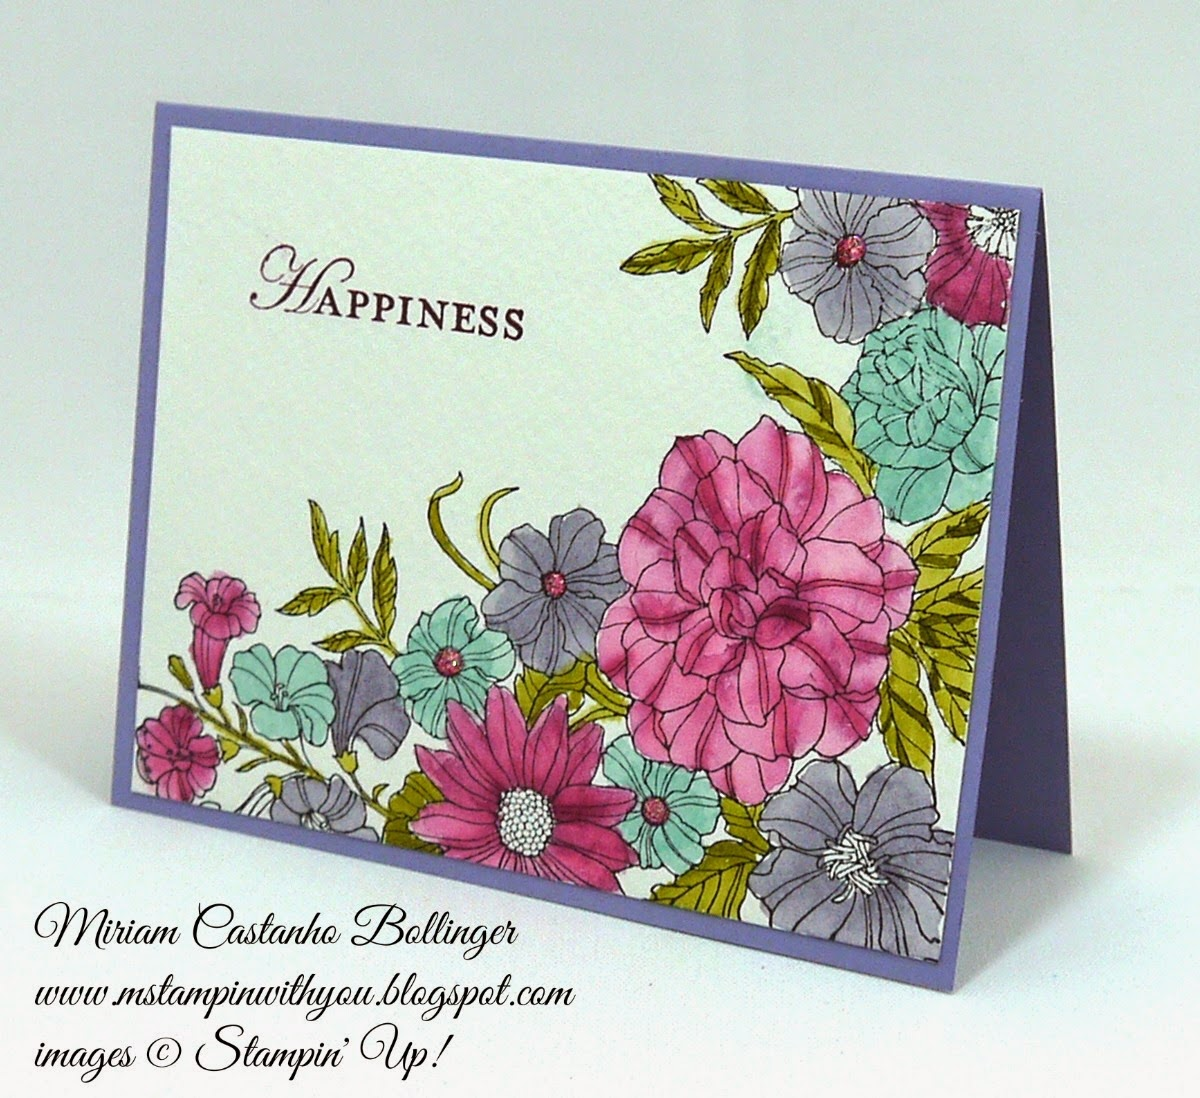 CQC 255, Miriam Castanho Bollinger, #mstampinwithyou, stampin up, demonstrator, cqc, corner garden, watercolor, wedding card, su